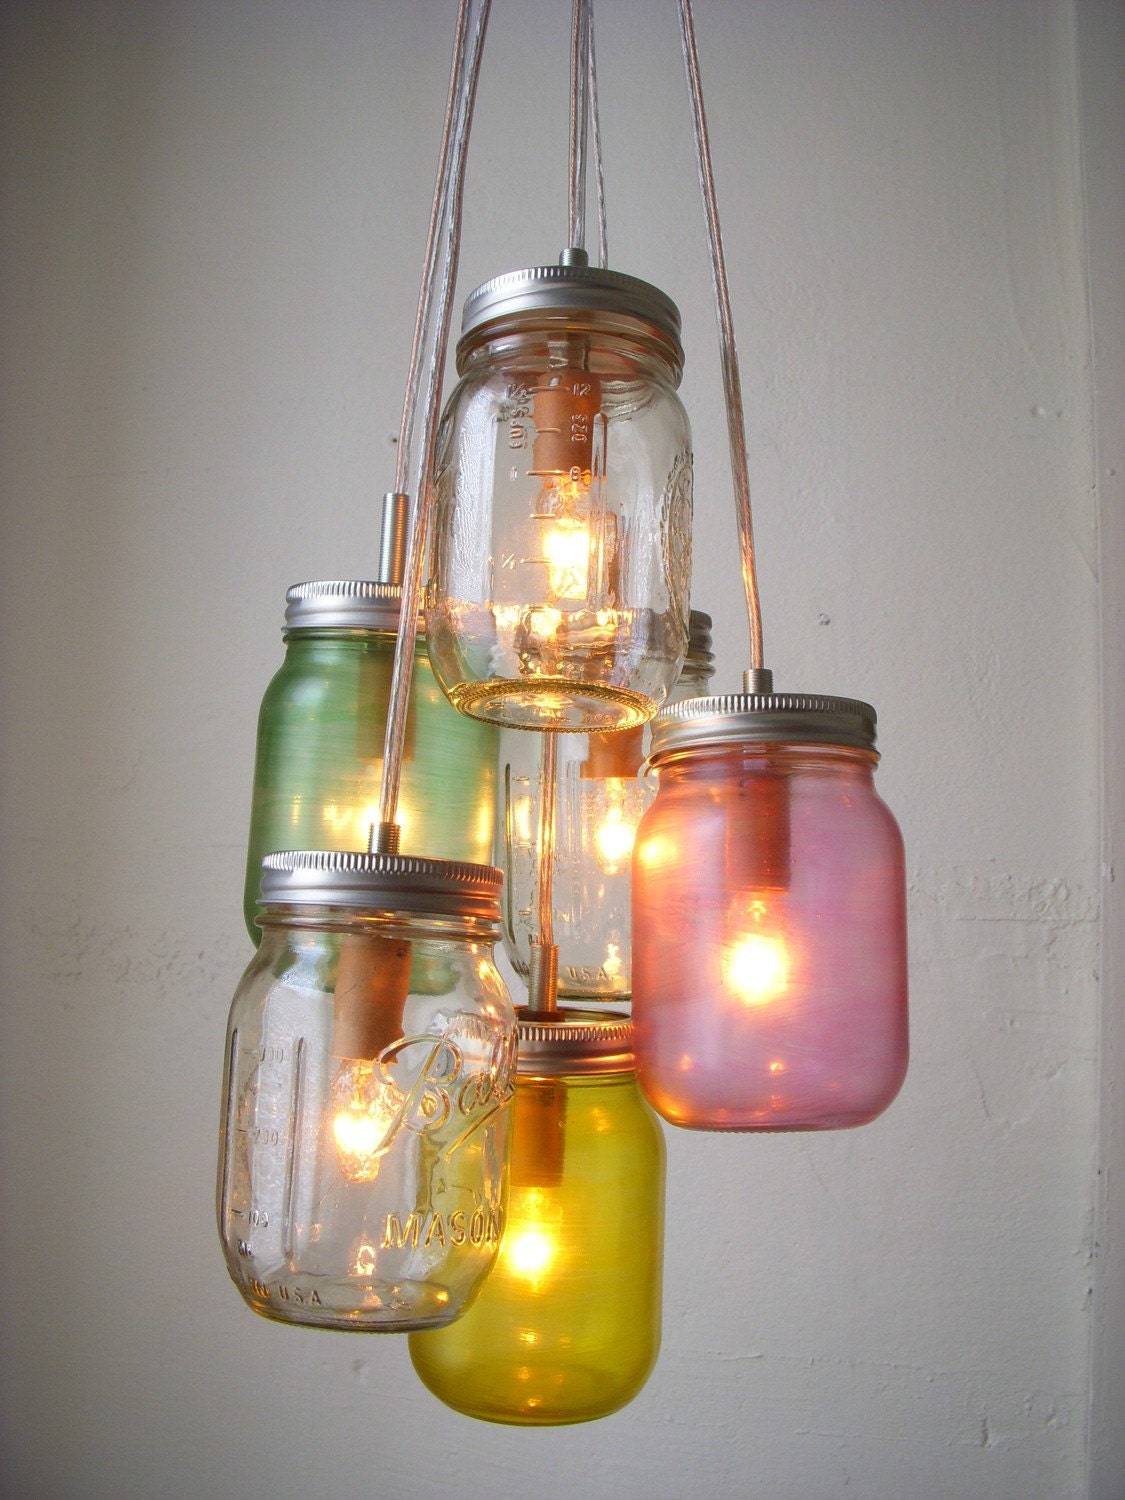 Hanging Lights Made From Mason Jars Of Mason Jar Chandelier Rustic Hanging Mason Jar Pendant